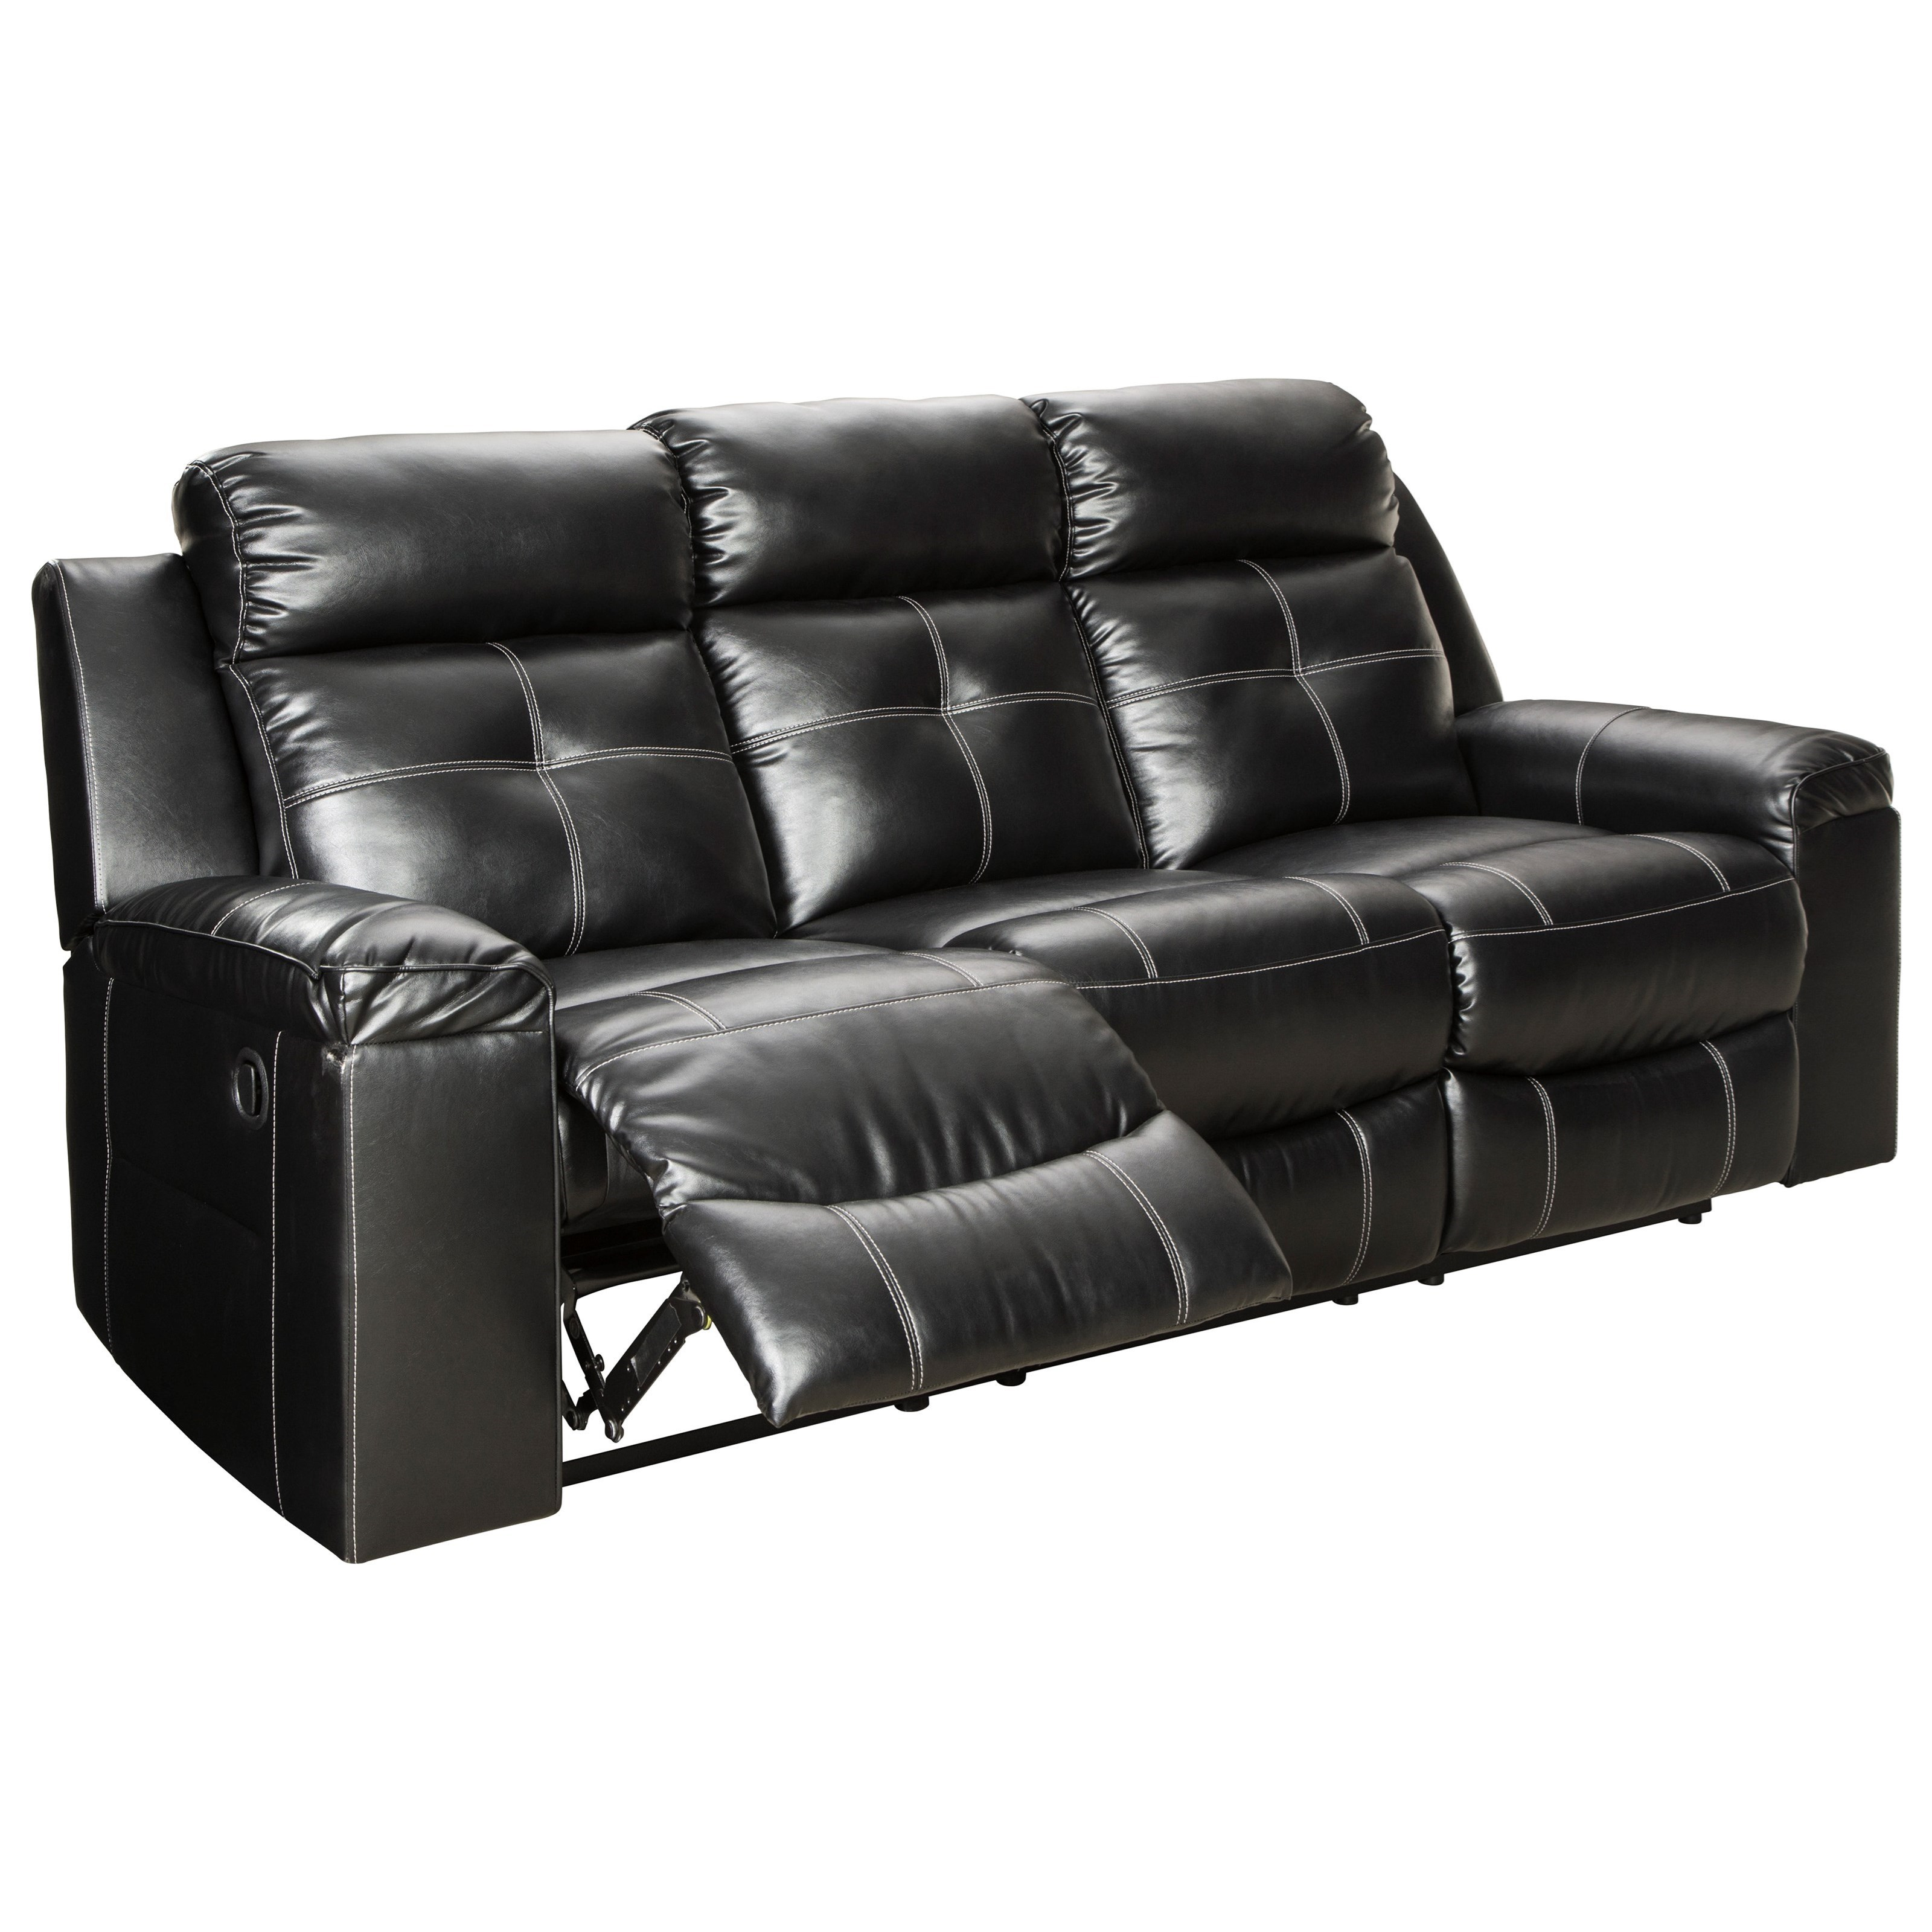 Kempten Reclining Sofa by Signature Design by Ashley at Value City Furniture